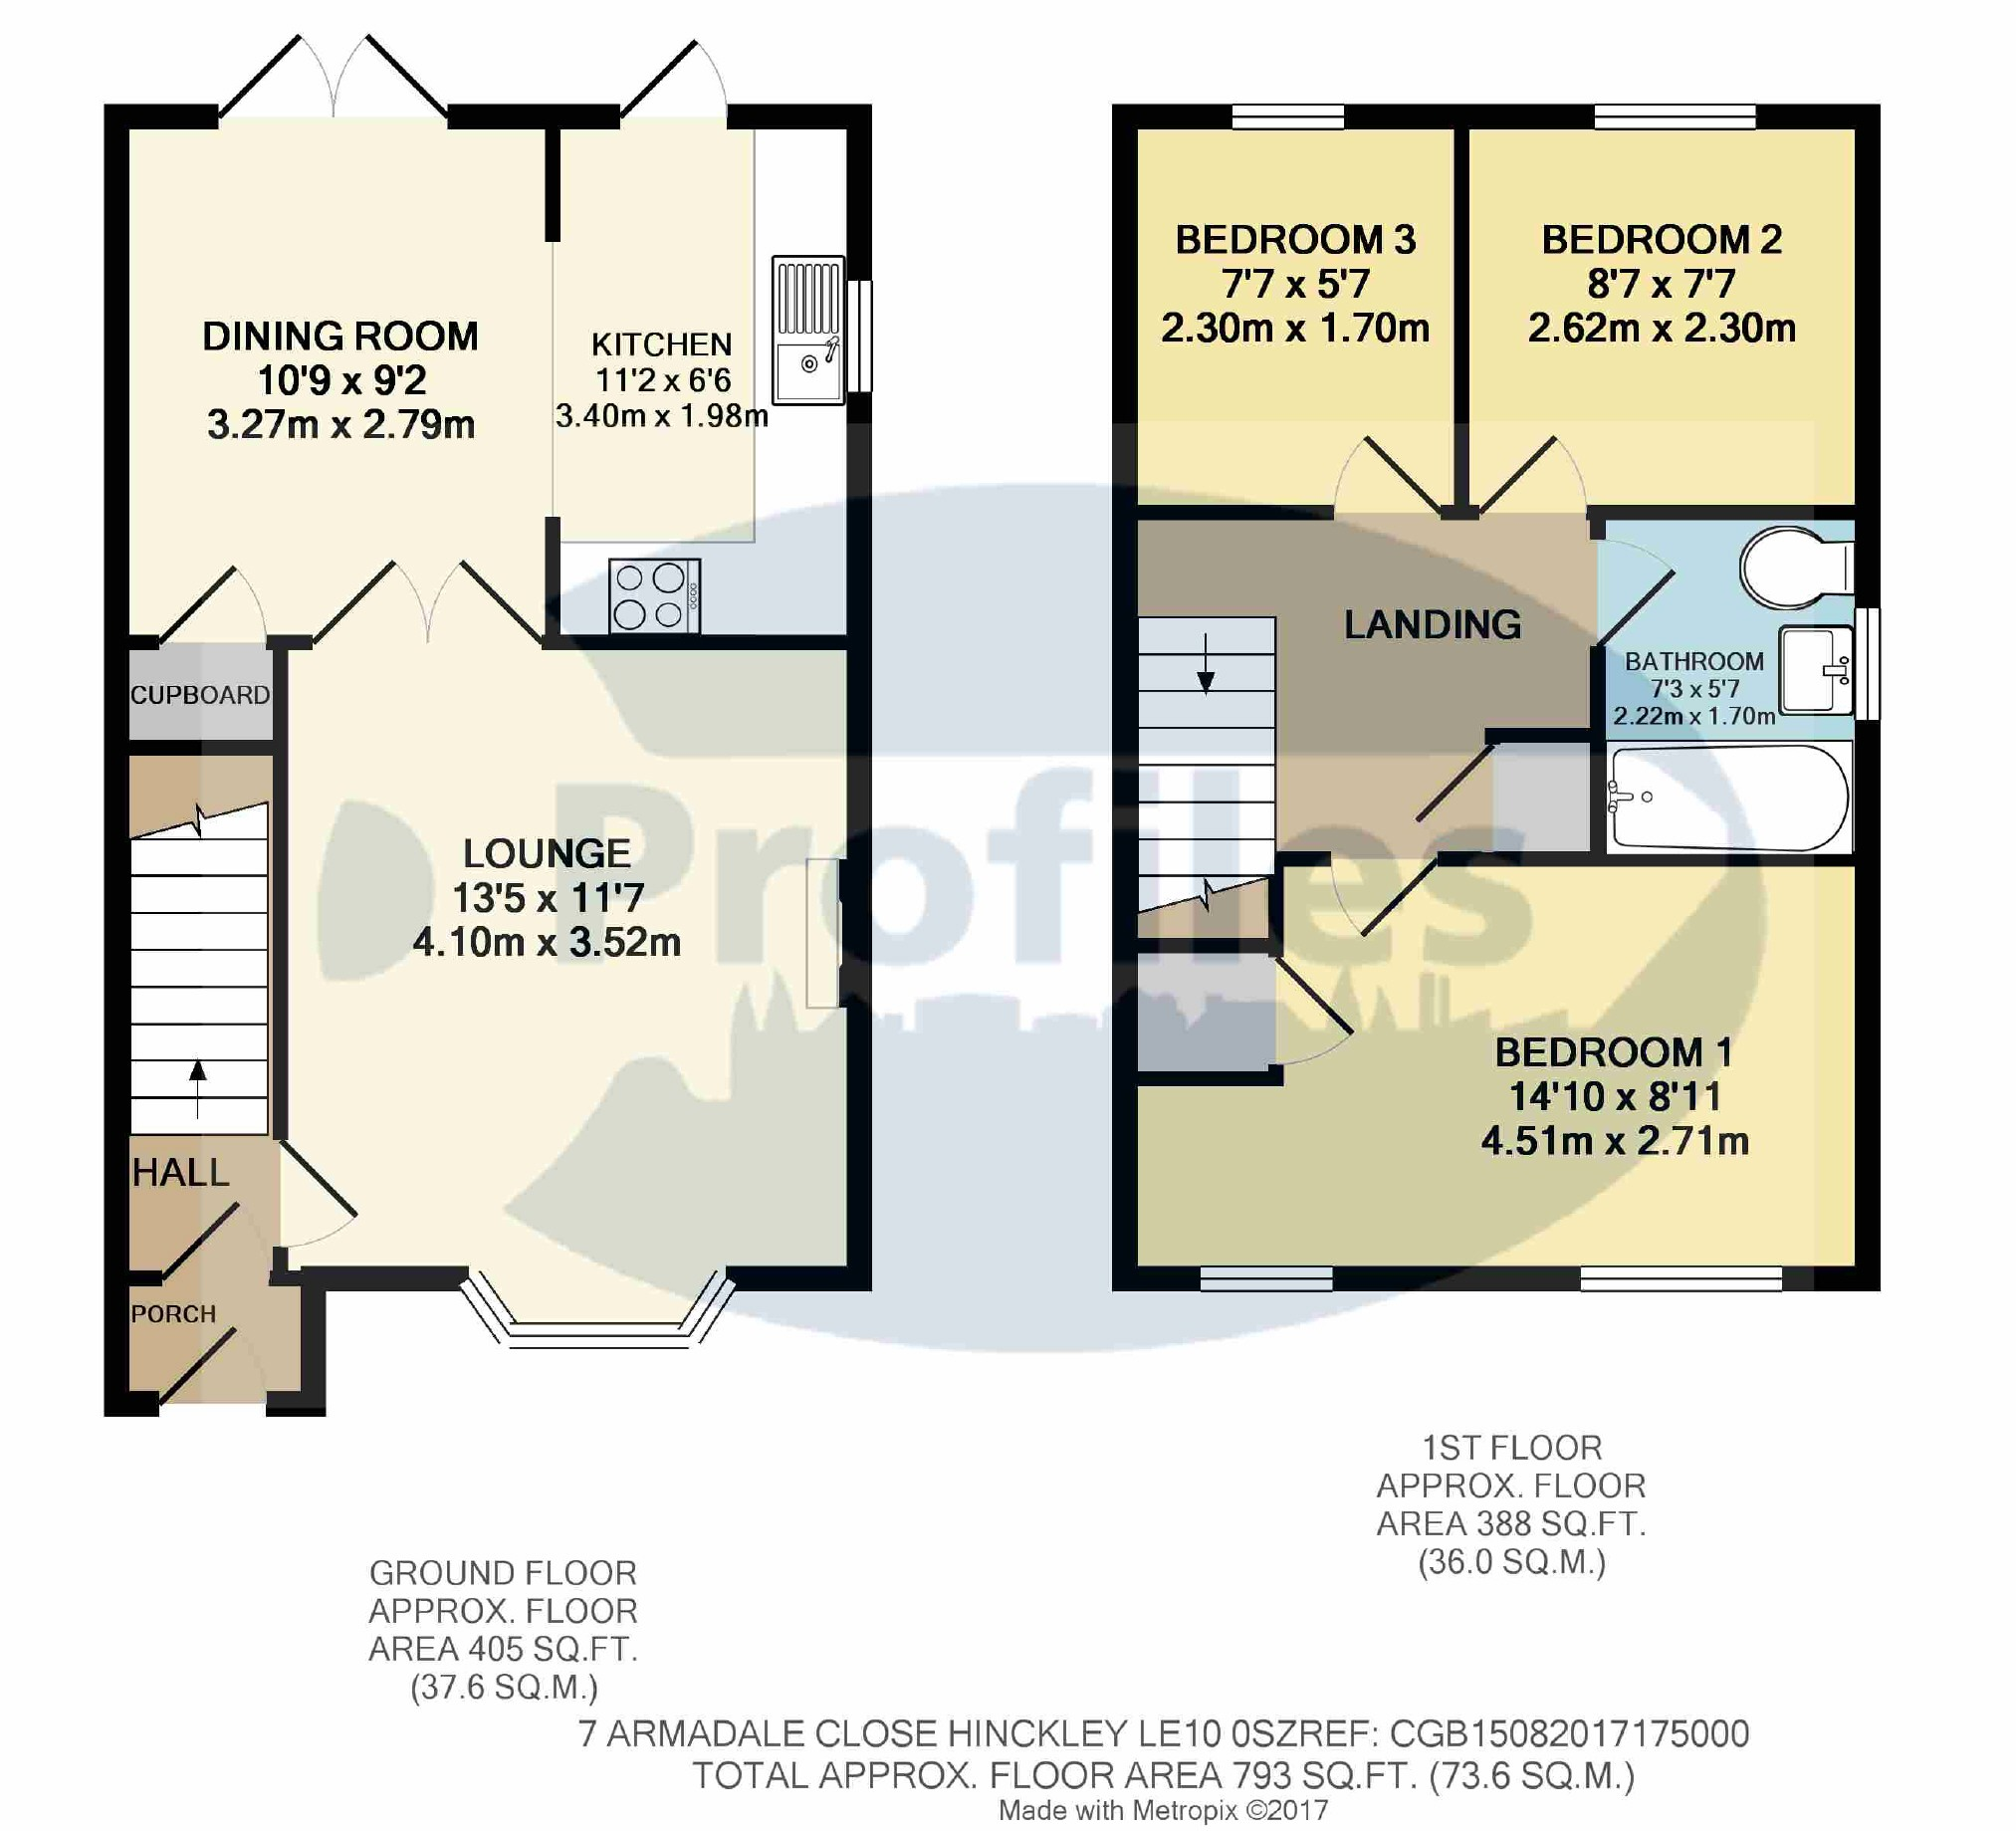 3 bed semi detached house for sale in armadale close hinckley